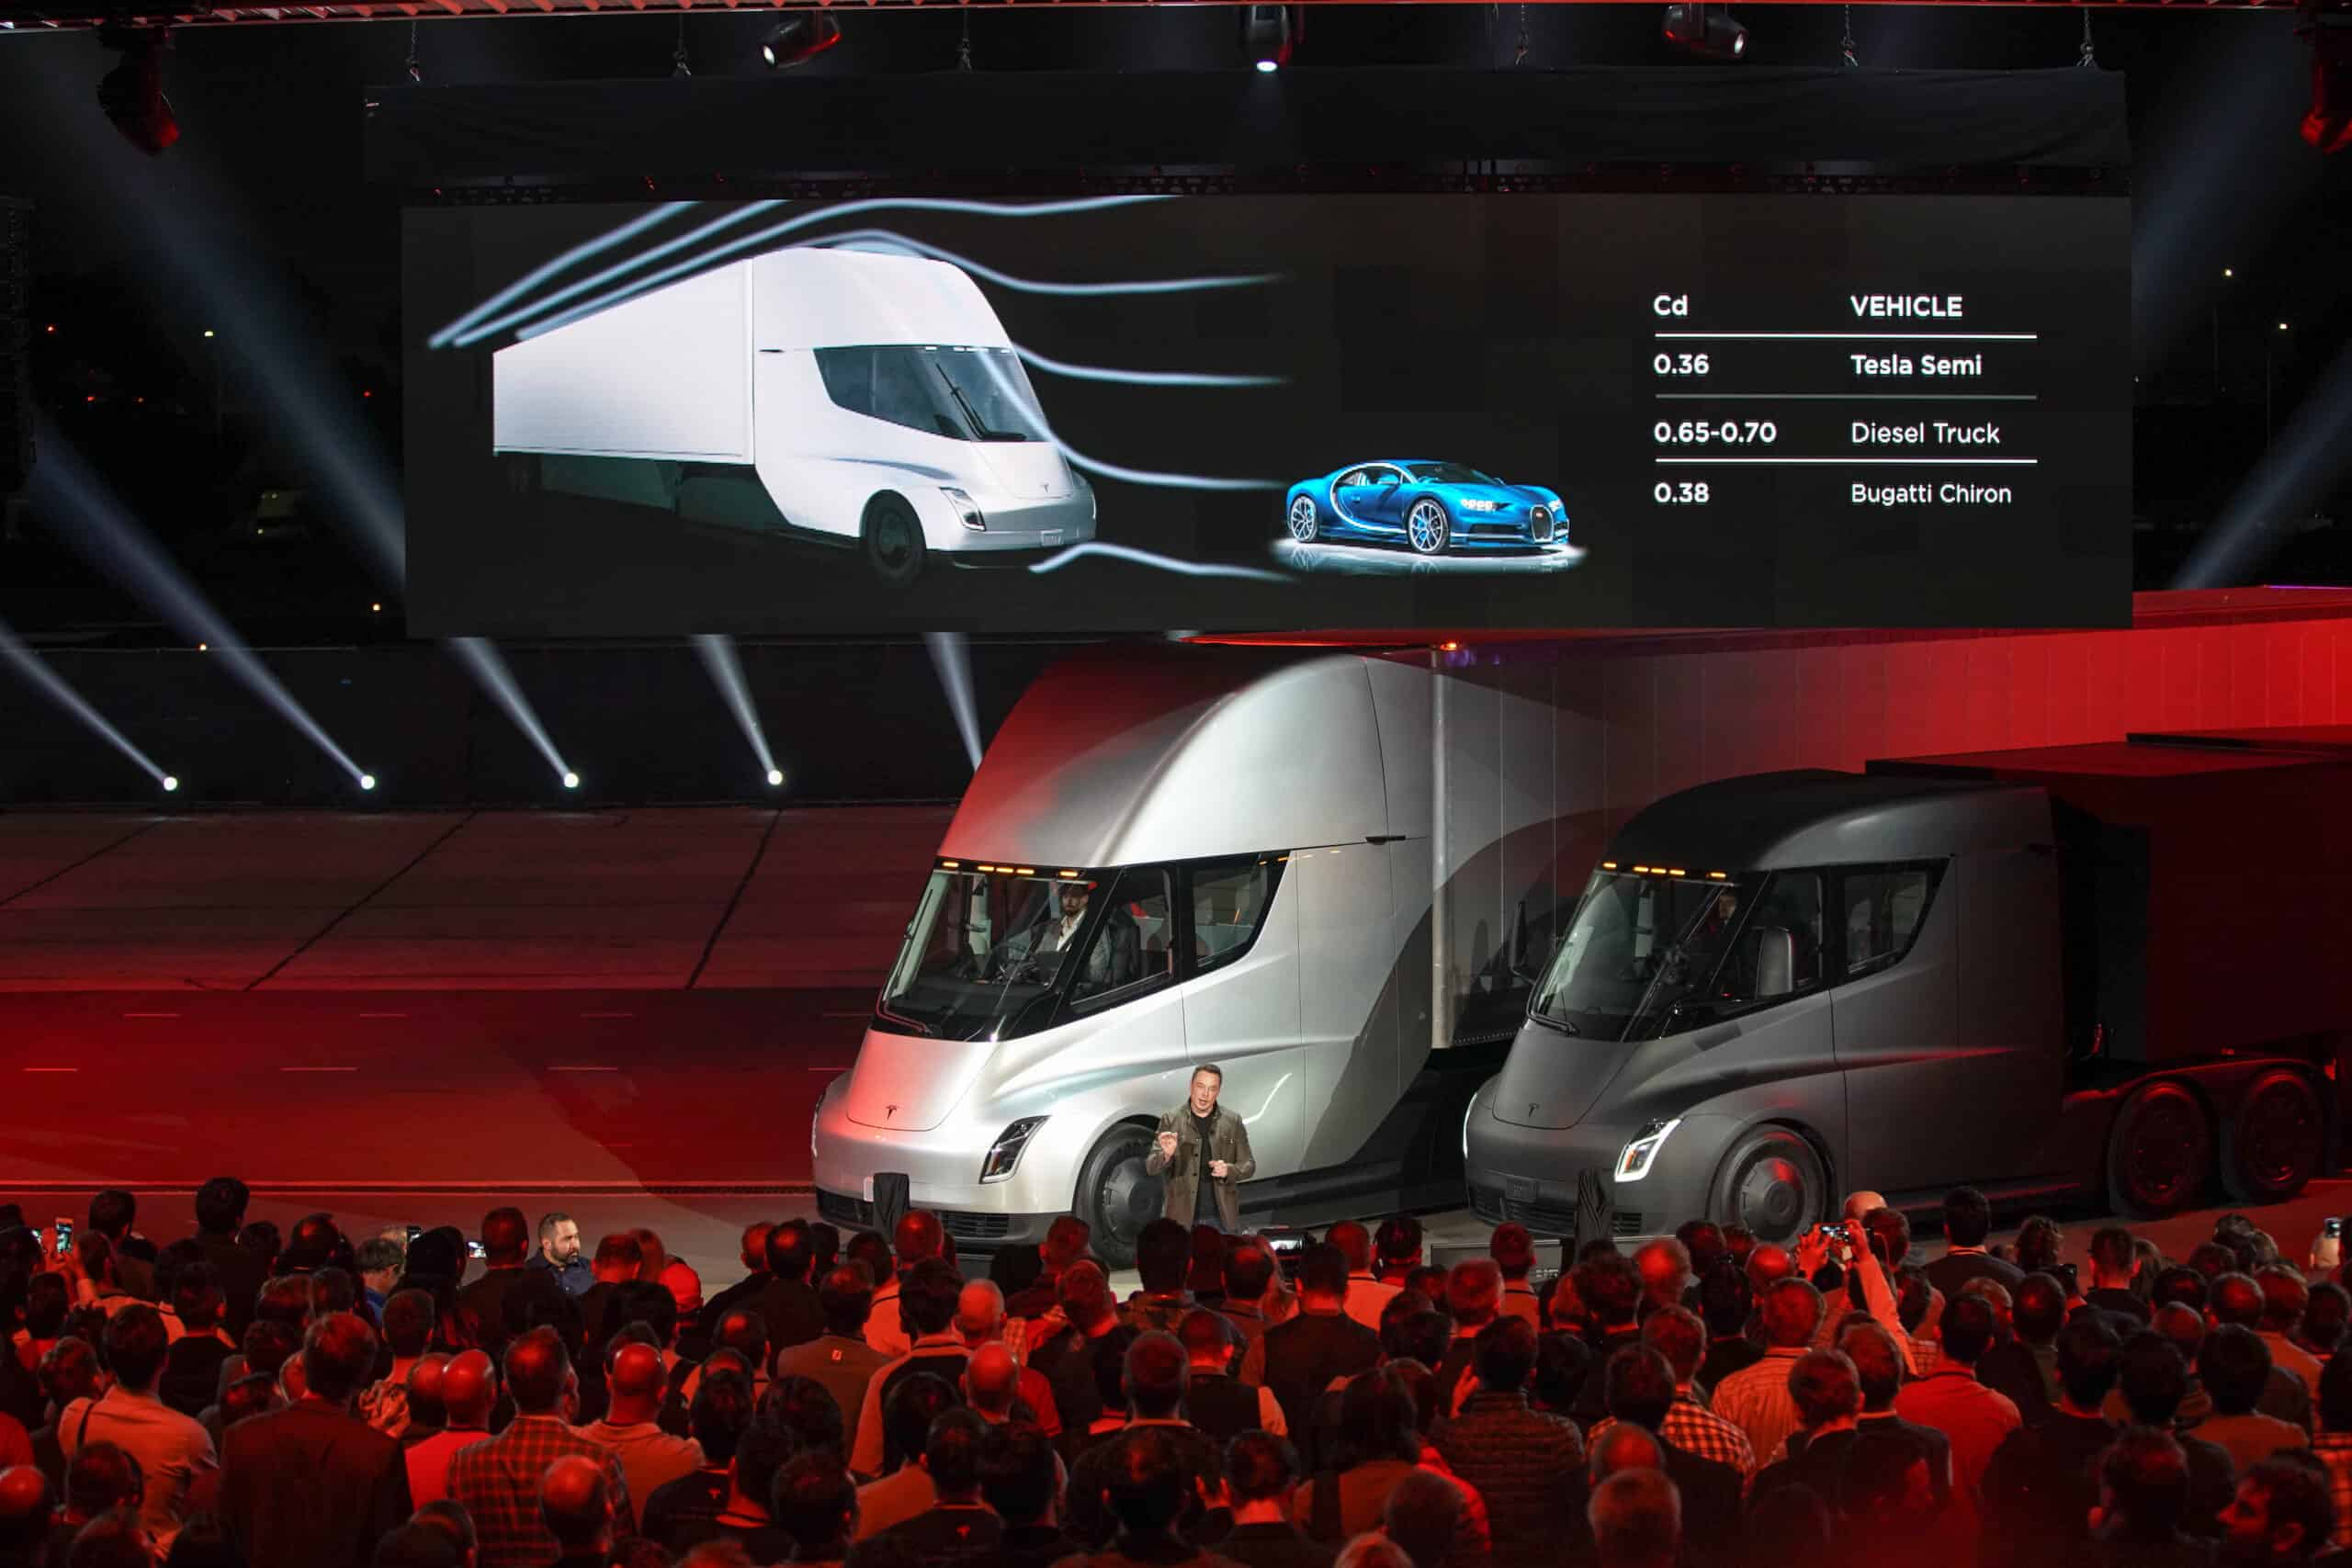 TESLA semi unveil